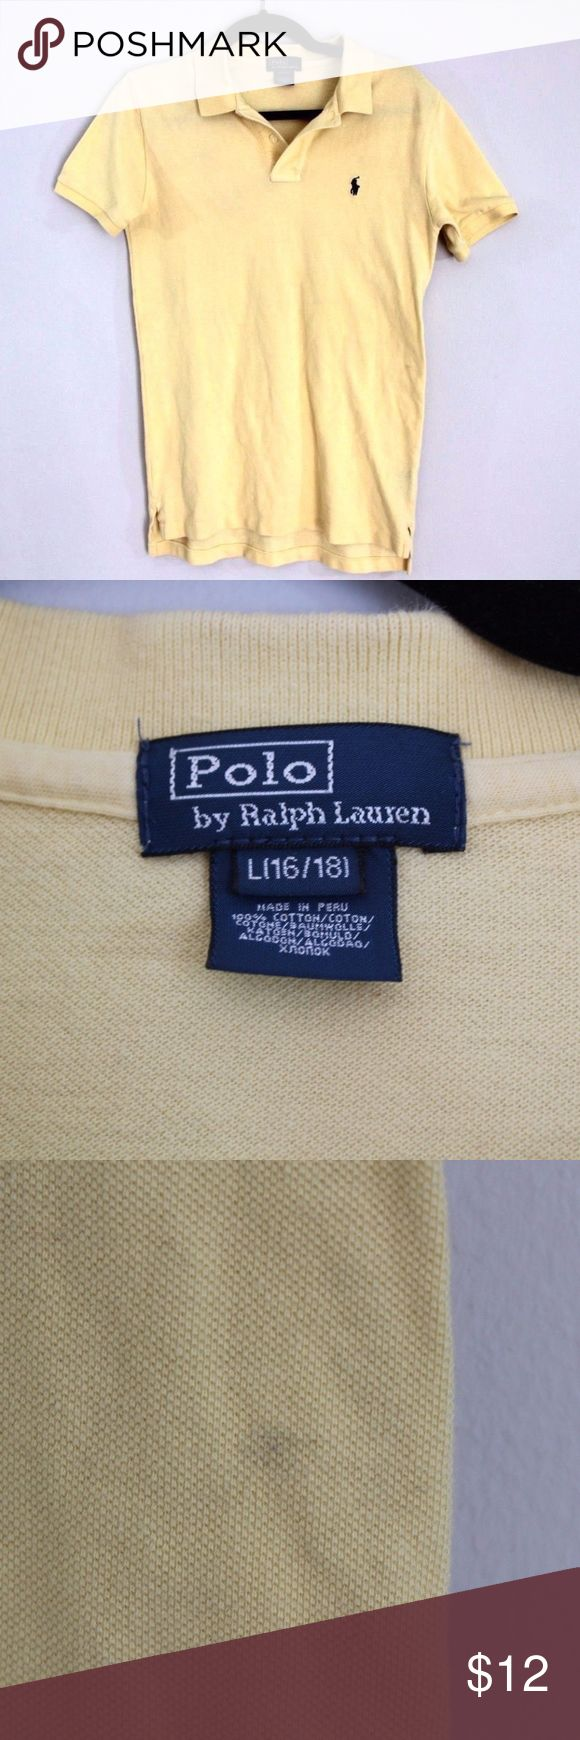 Boys Large Polo Ralph Lauren Golf Polo Shirt Polo by Ralph Lauren Boys Shirt  Excellent shirt  Mark on the back  The size is Large and the measurements are 18 inches pit to pit and 26.5 inches shoulder to base  Yellow with Blue Pony logo  100% Cotton   Check out my other items for sale in my store!  M2 Polo by Ralph Lauren Shirts & Tops Polos